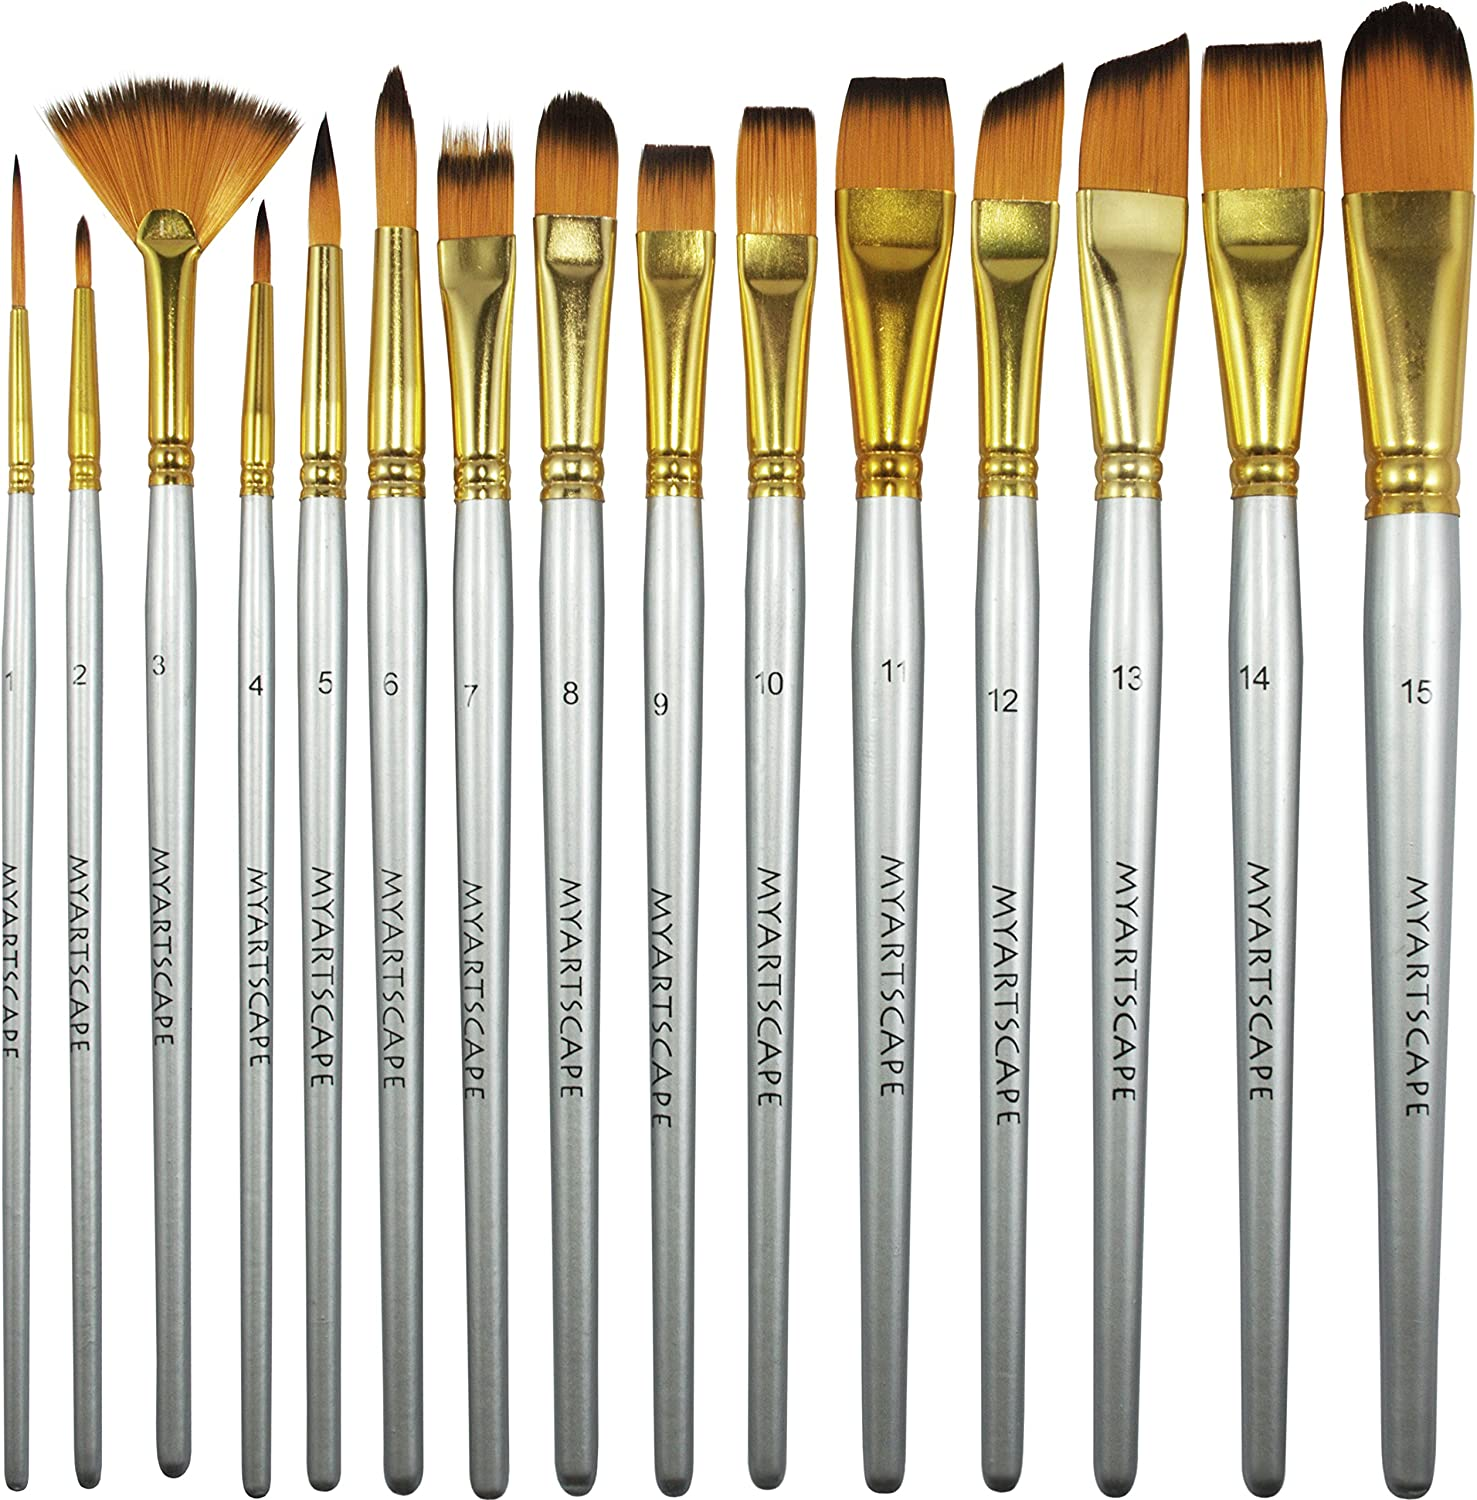 MyArtscape Paint Brush - Set of 15 Art Brushes for Watercolor, Acrylic & Oil Painting - Short Handles